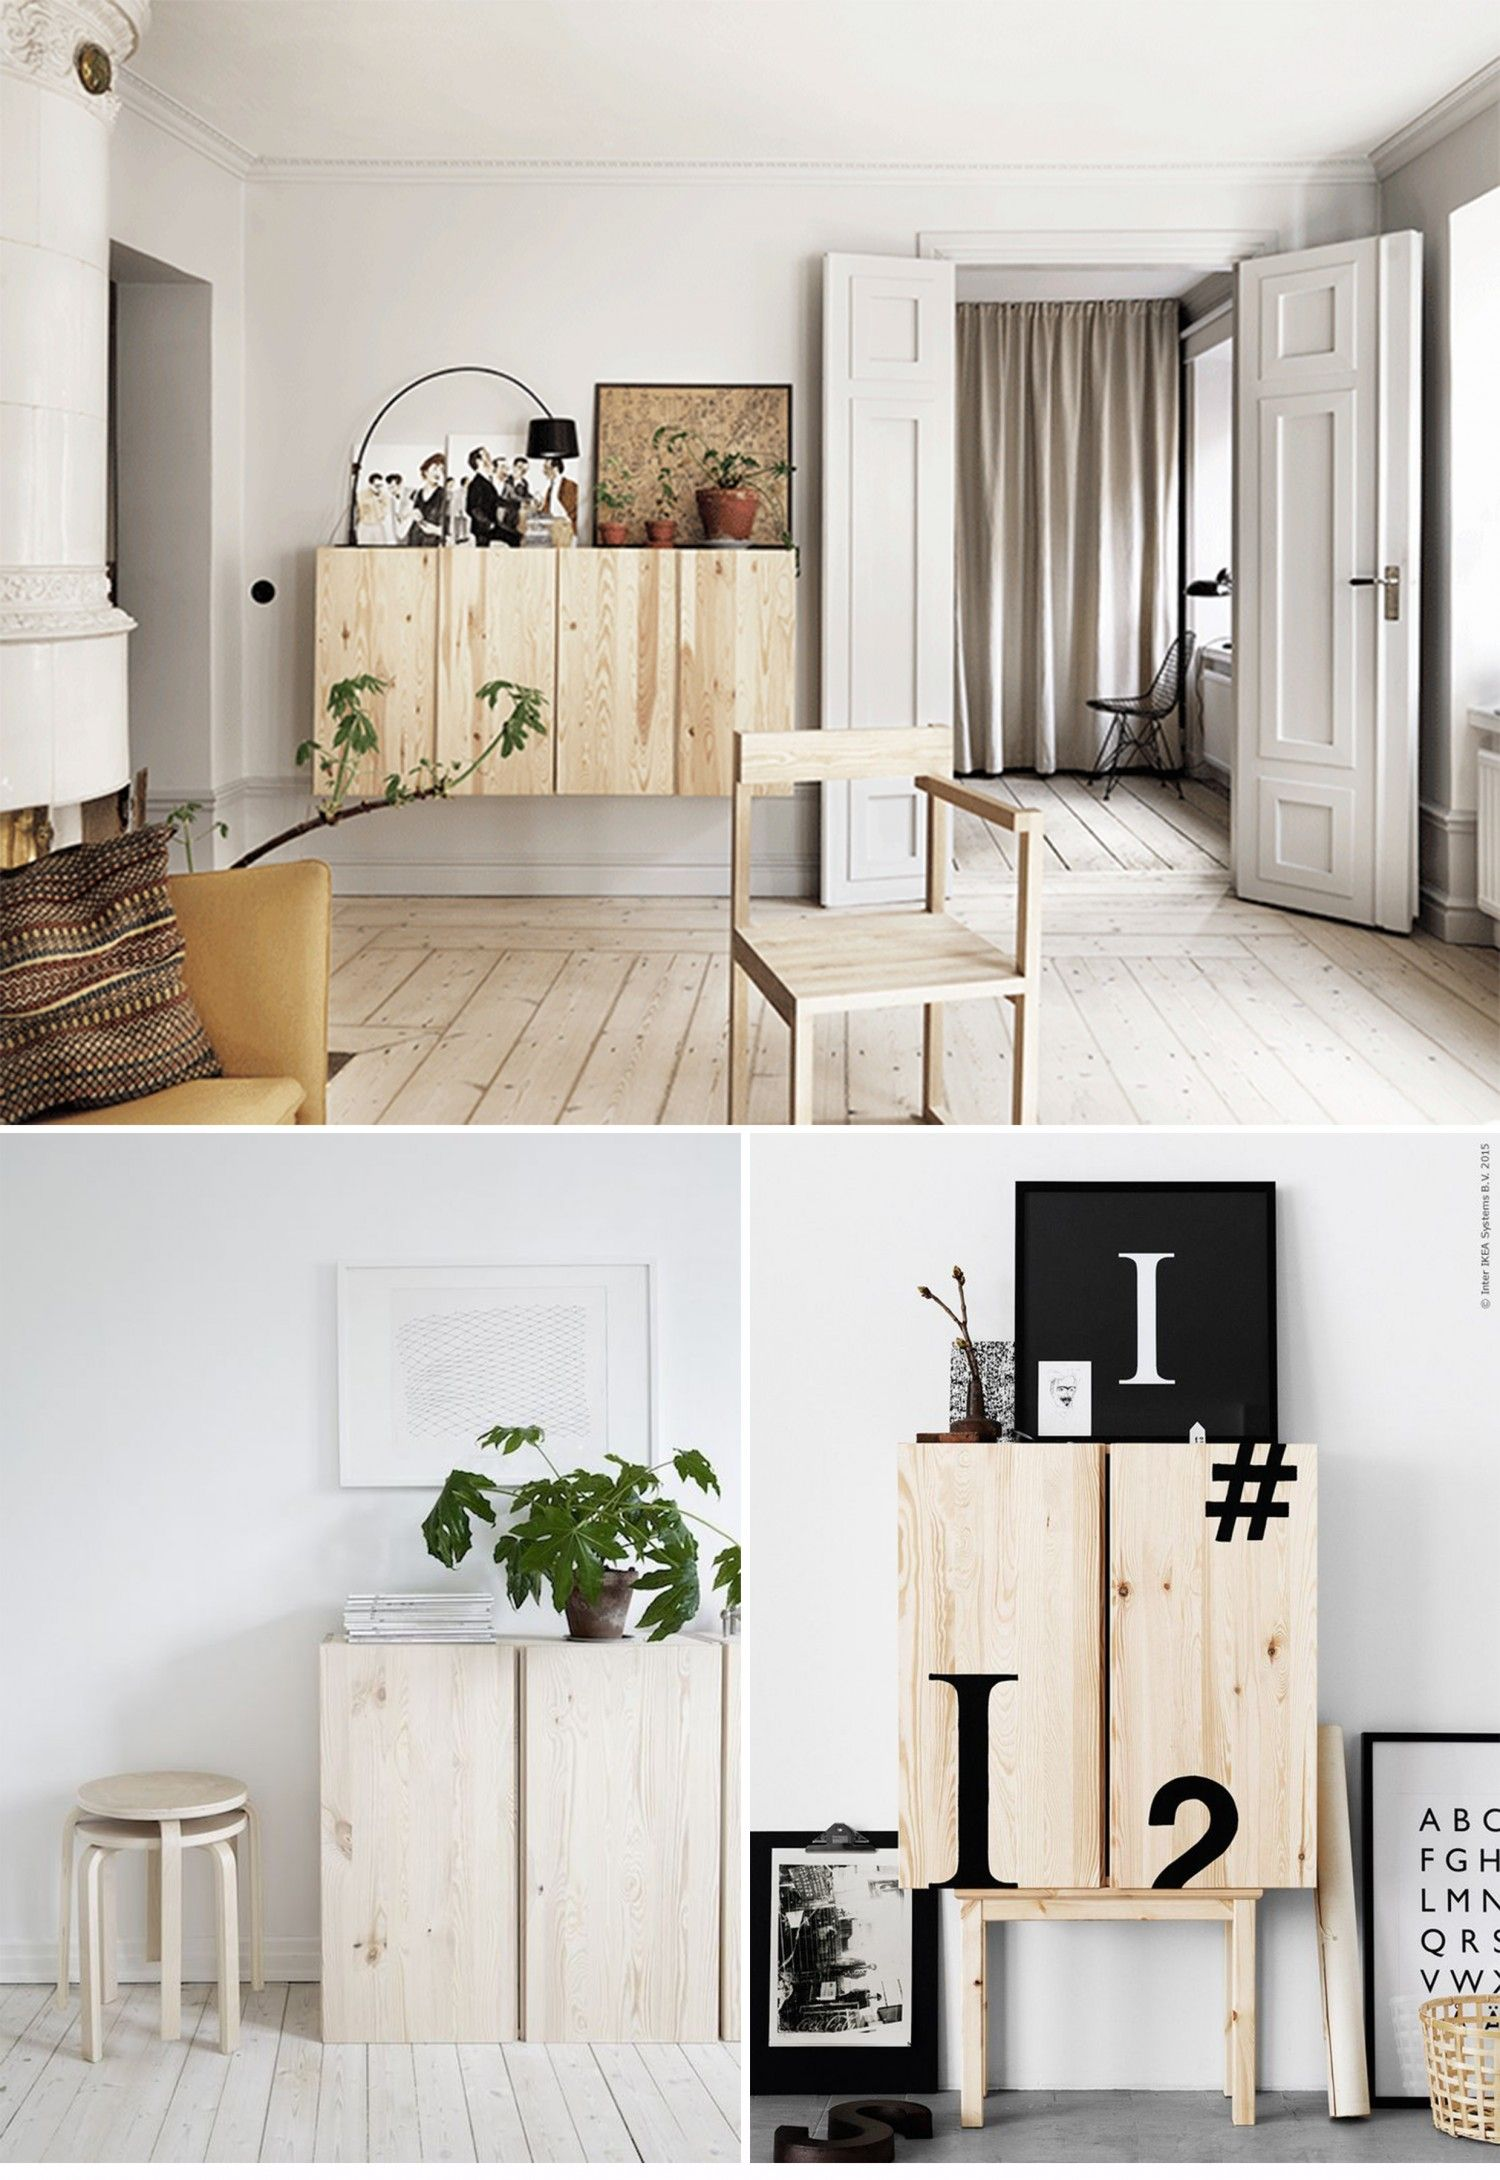 meuble ivar portes pin brut ikea hacks pinterest brut pin et portes. Black Bedroom Furniture Sets. Home Design Ideas